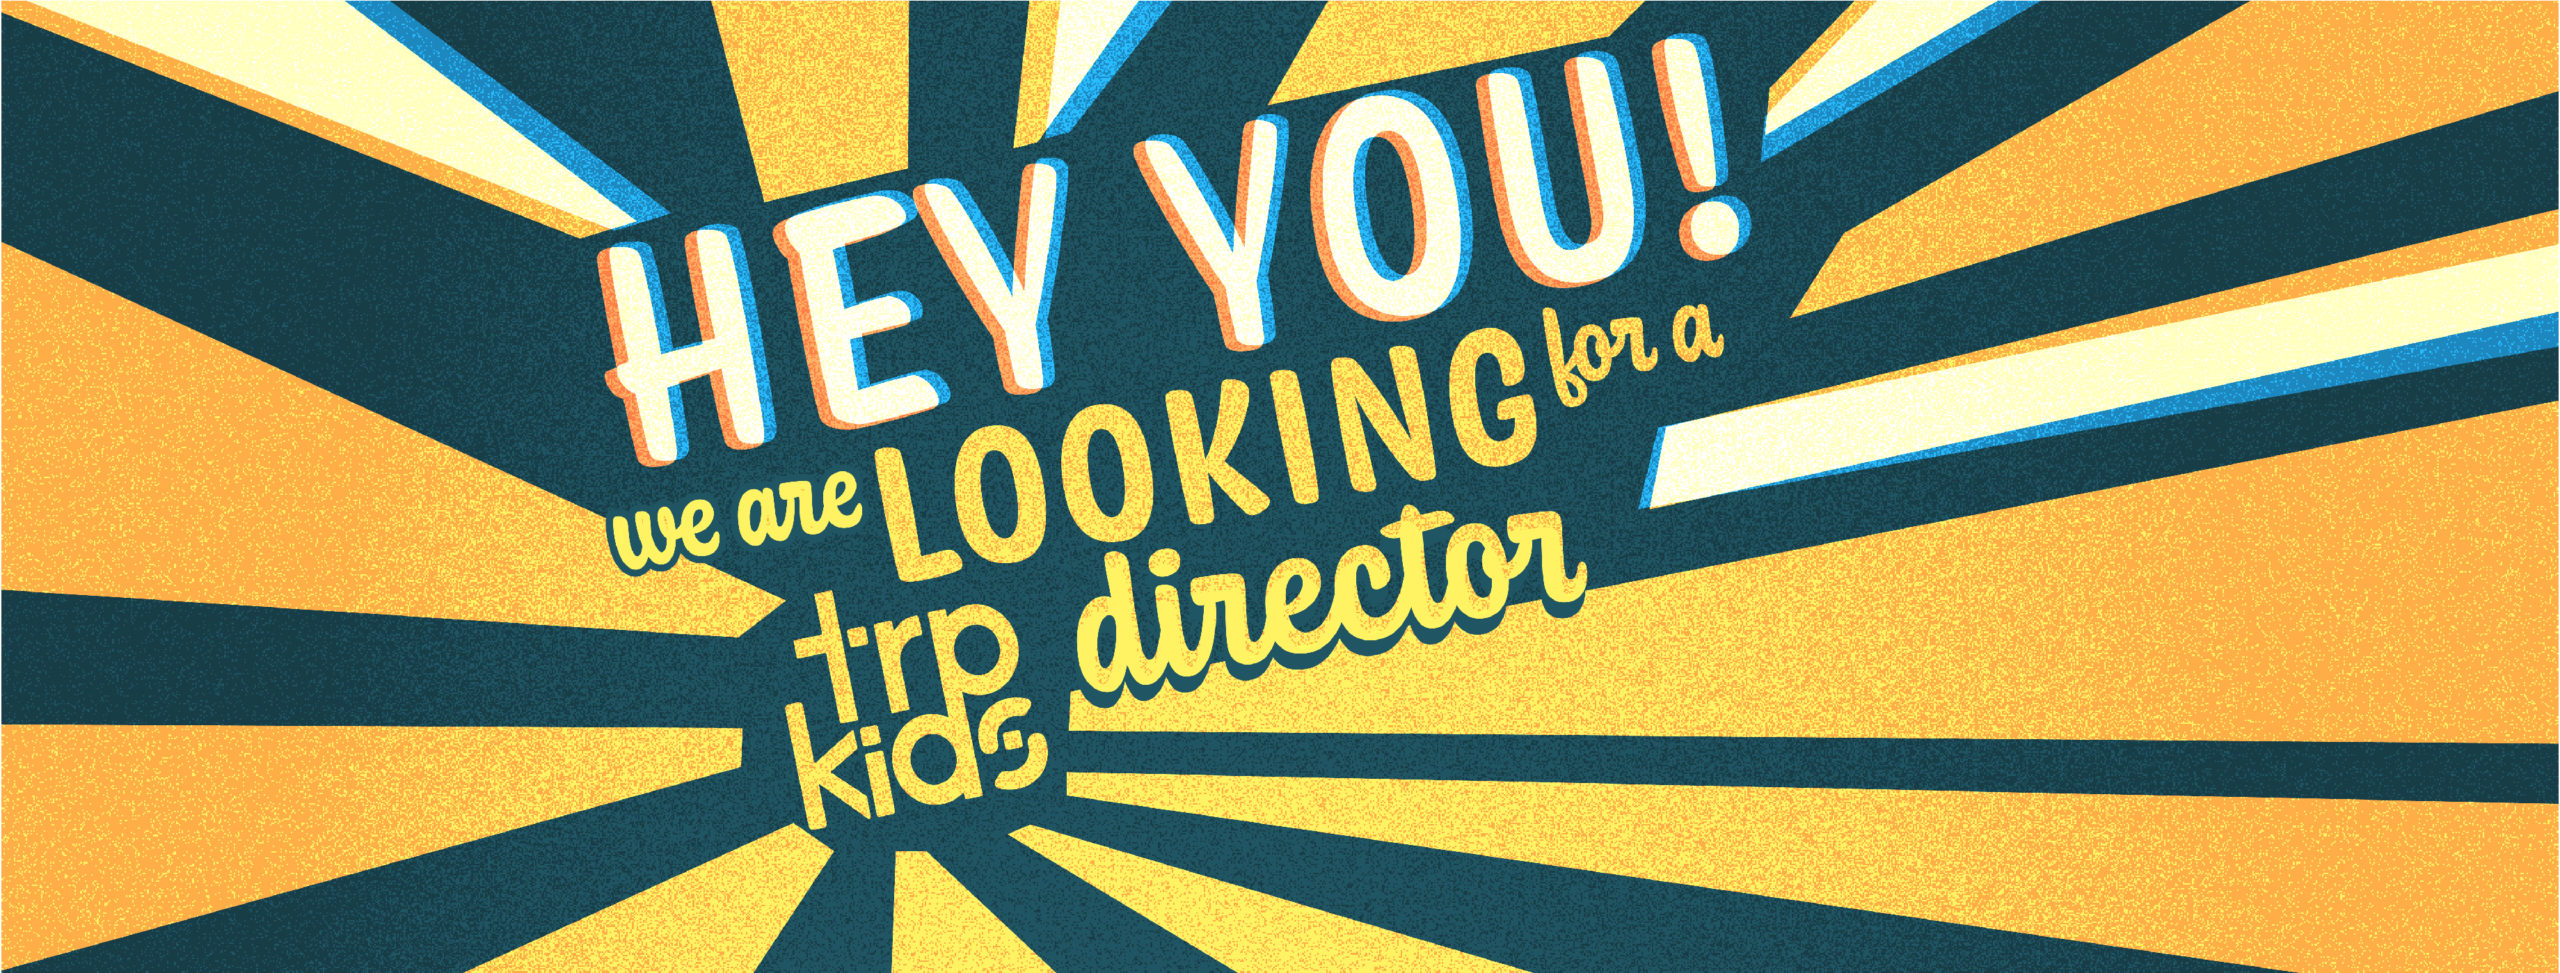 trp kids director web header-02